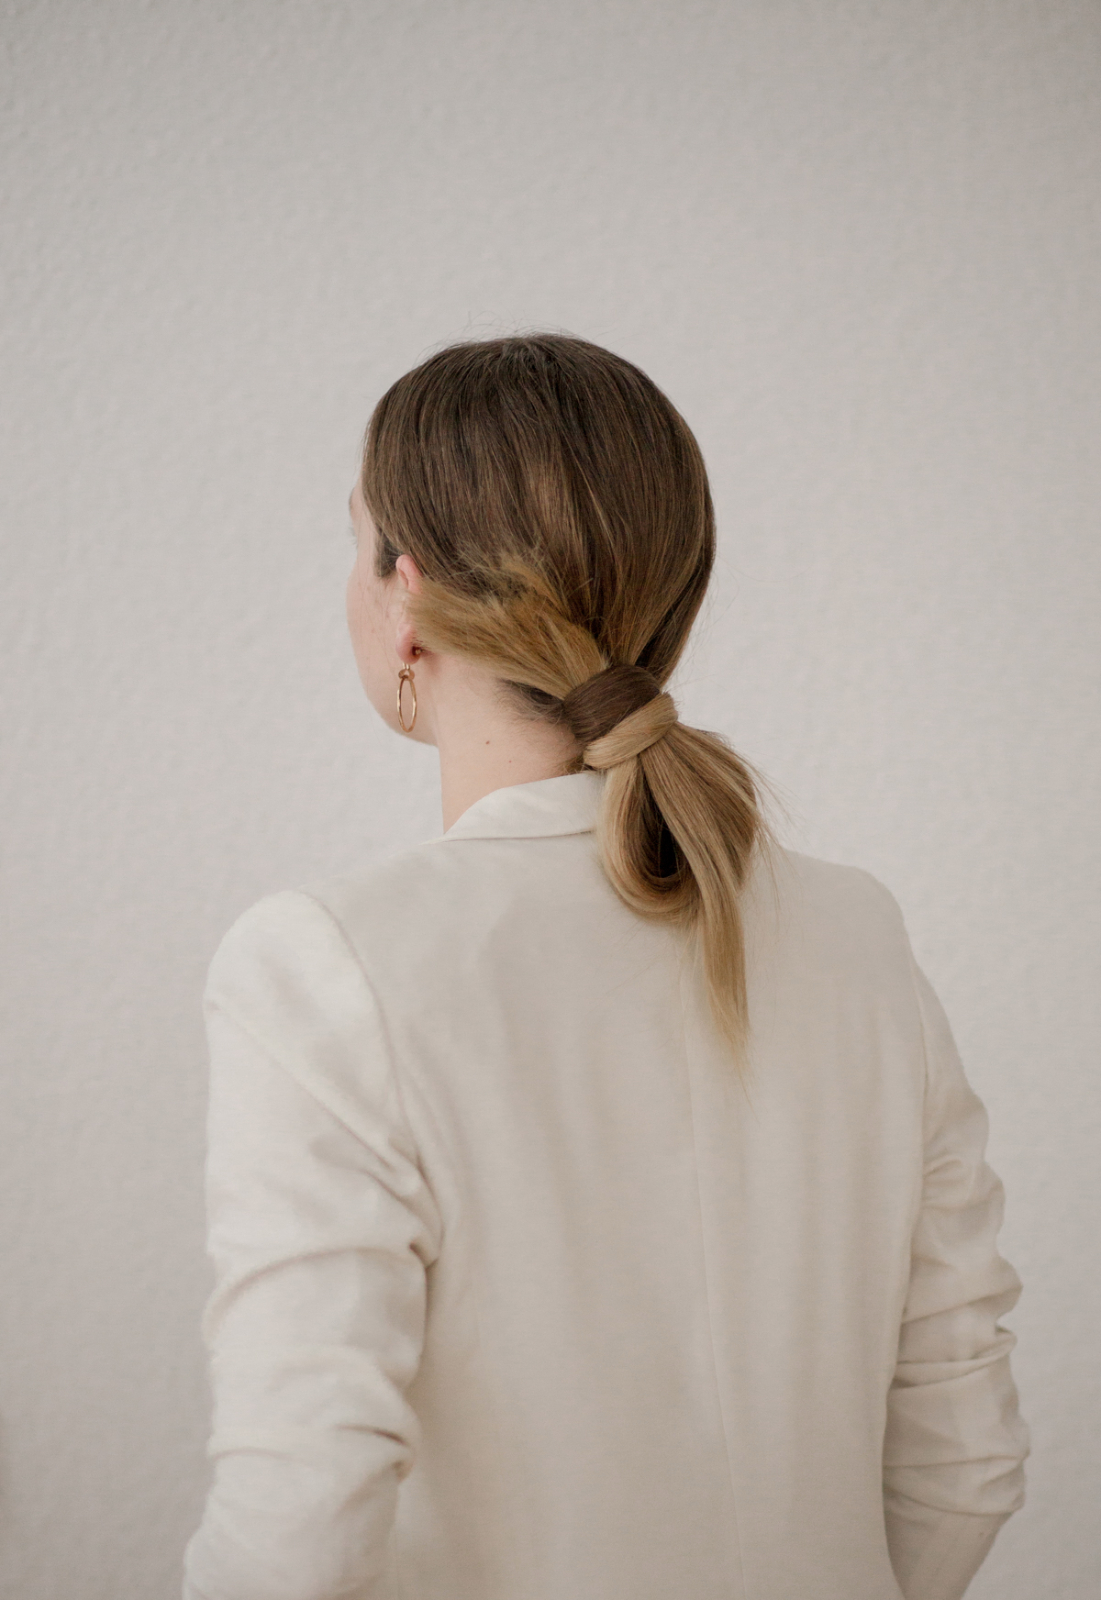 chignon for Christmas Wella Oil Reflections Light Berlin Tasche Adventskalender 2016 online für frauen The-Limits-of-Control-Fashion-Fashionblogger-Blogger-Berlin-Deutschland-Modeblog-Modeblogger